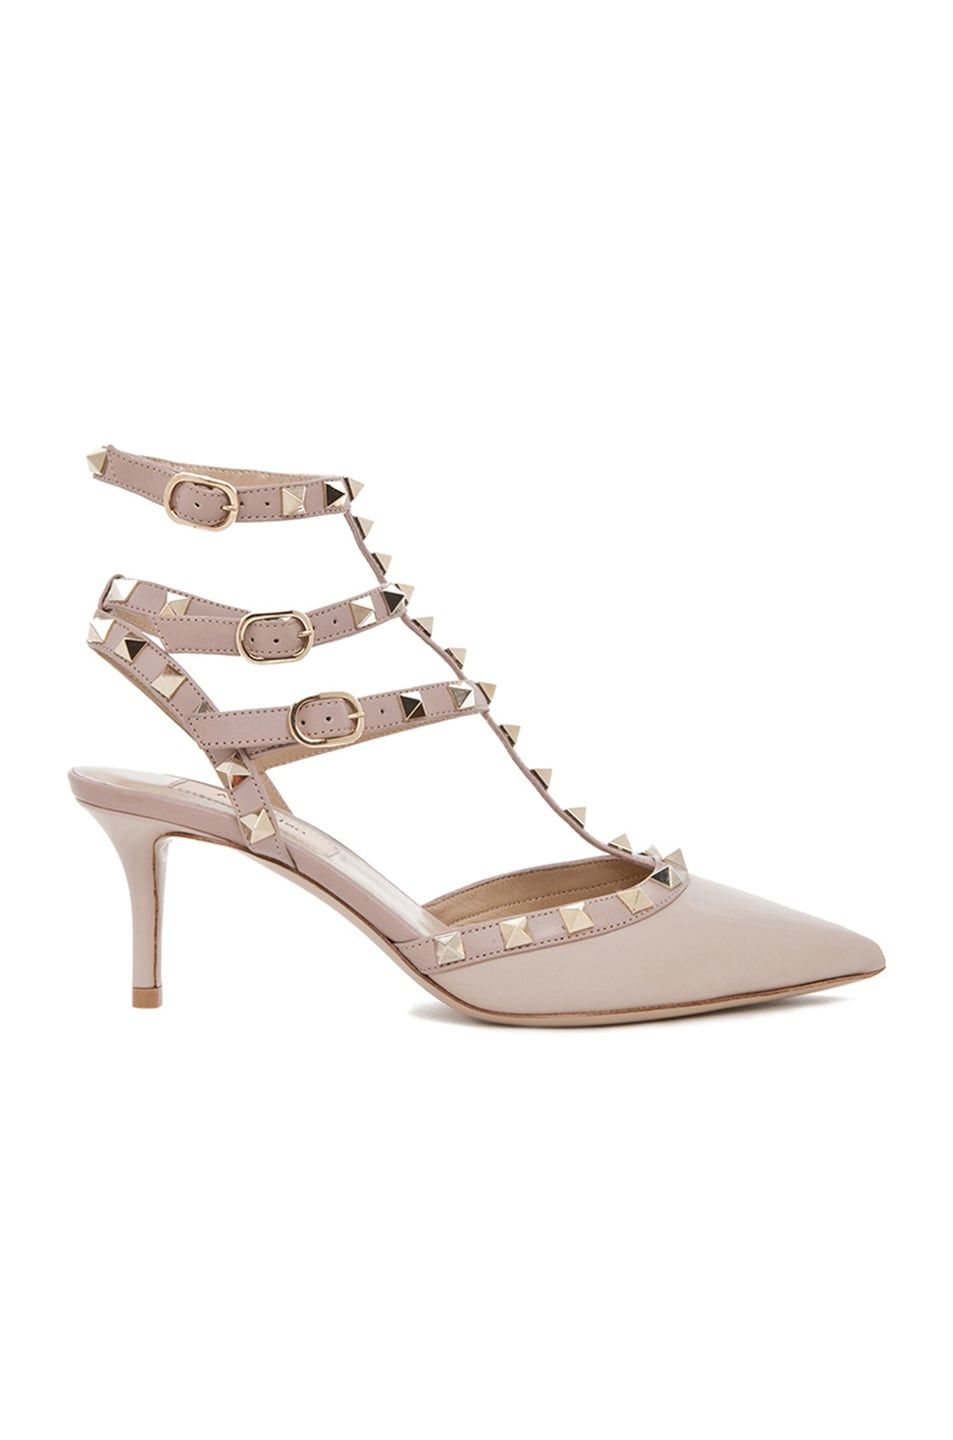 Image 1 of Valentino Rockstud Leather Slingbacks T.65 in Powder